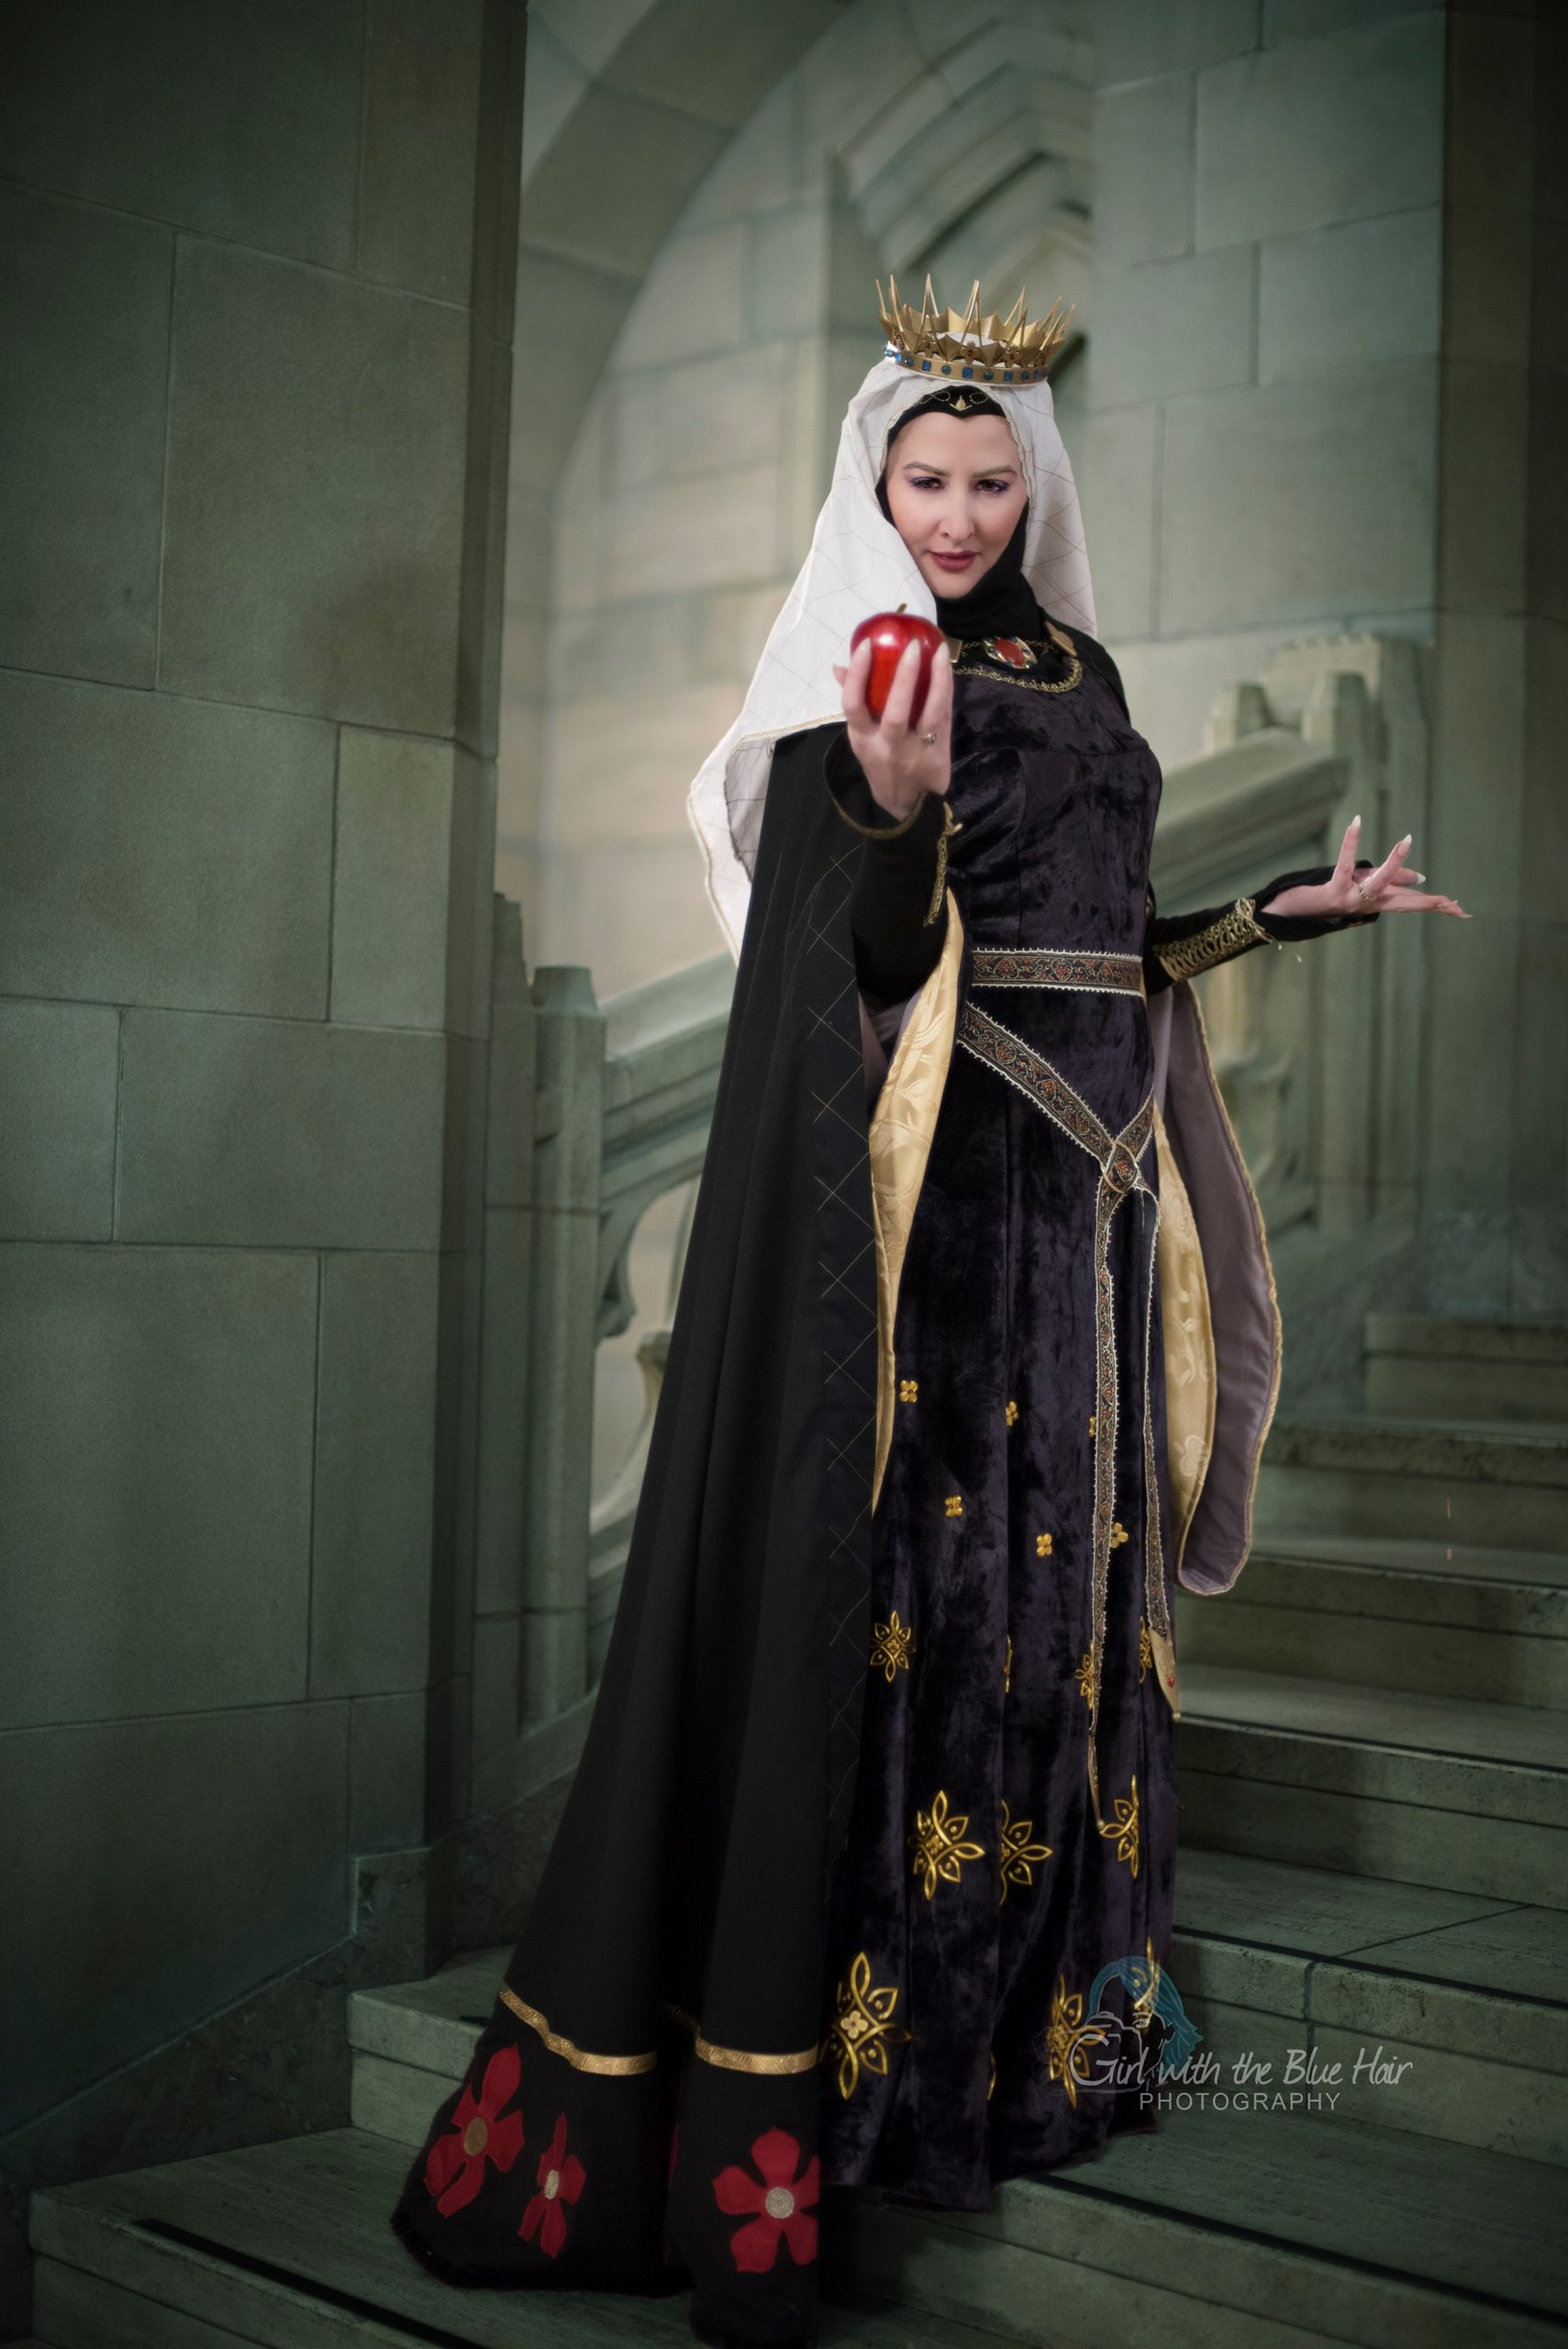 Medieval Evil Queen stands on a staircase holding up a red apple to the viewer.